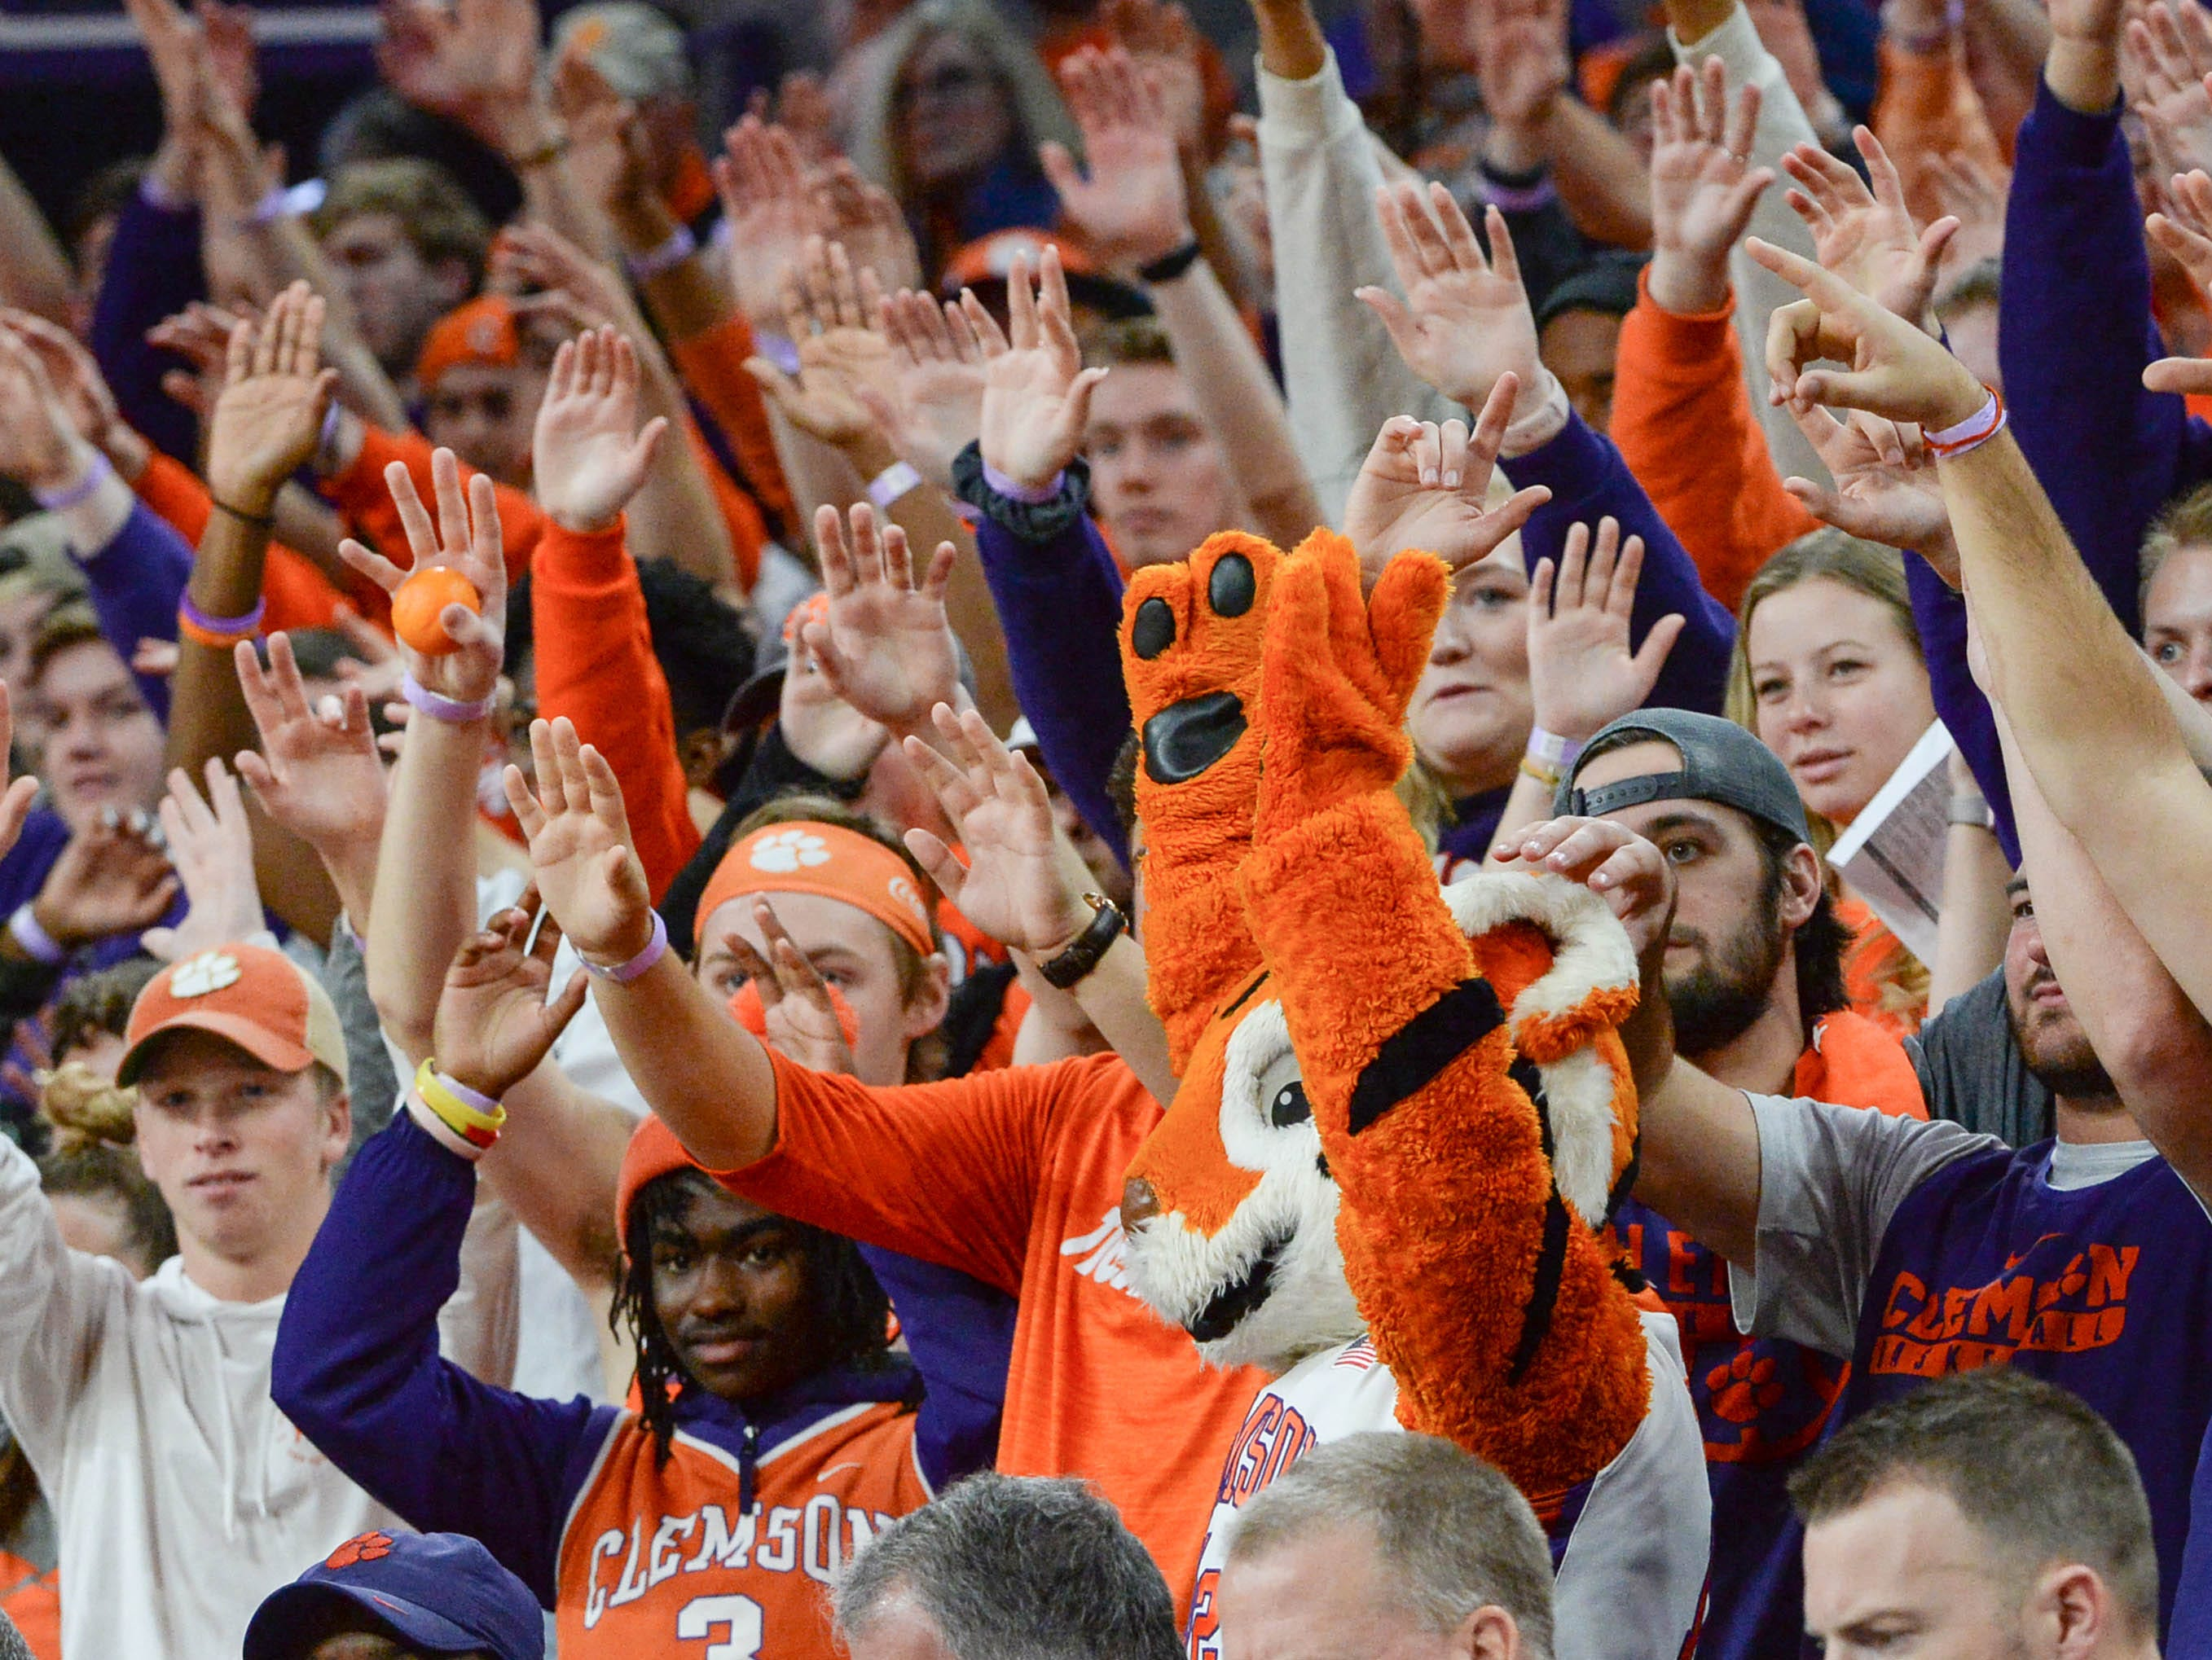 Clemson fans and the Tiger Cub during the first half at Littlejohn Coliseum in Clemson Saturday, March 9, 2019.